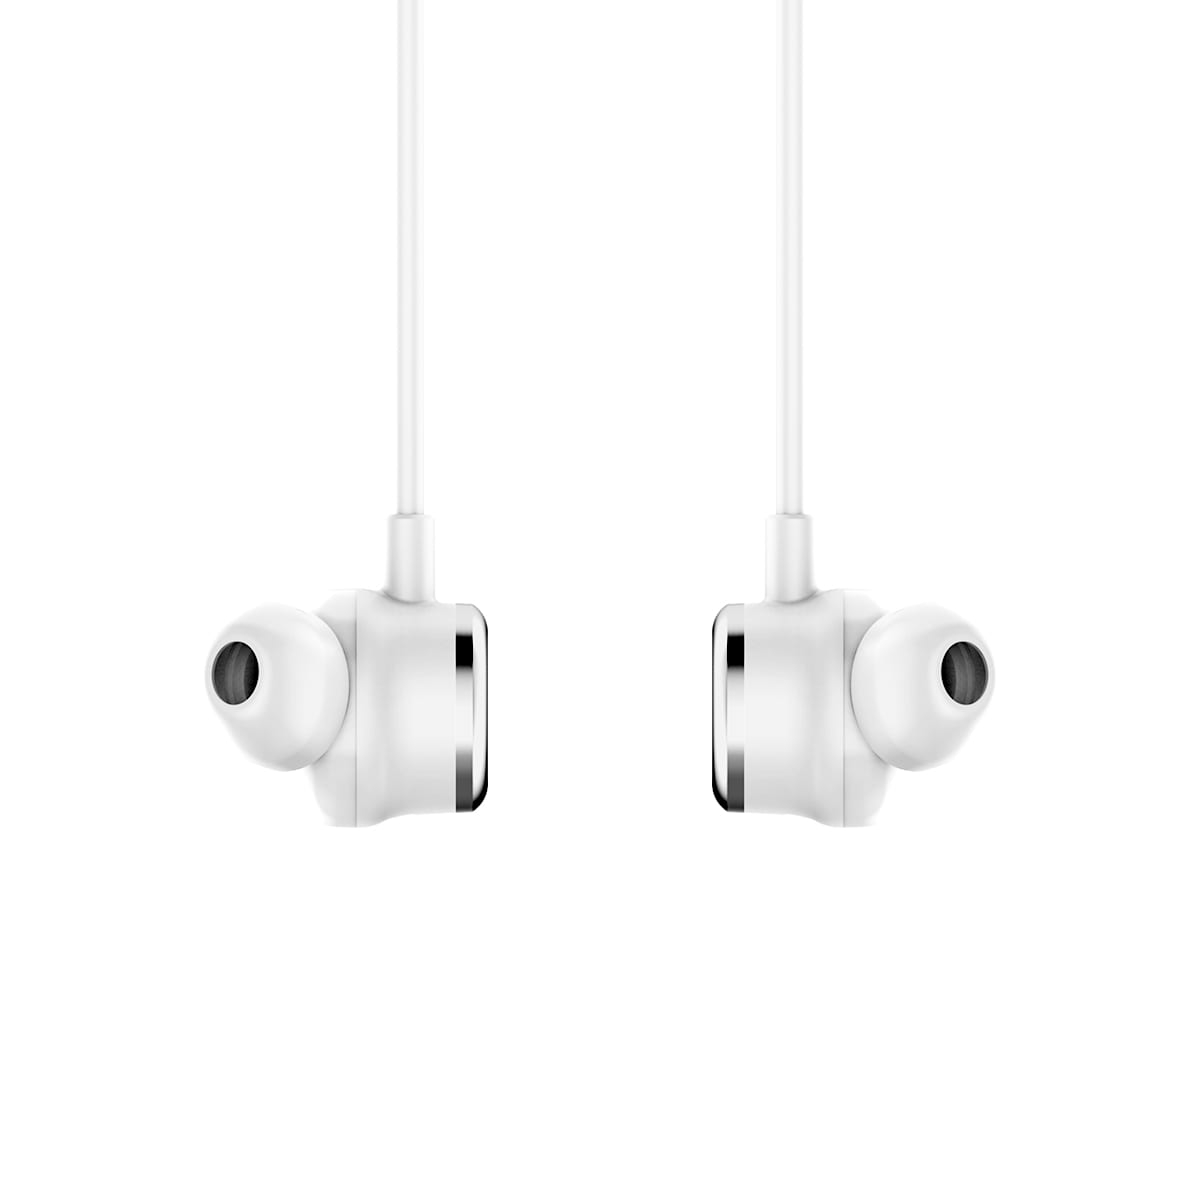 BASEUS NGS15-02 EARPHONE BT SIMU S15 WH